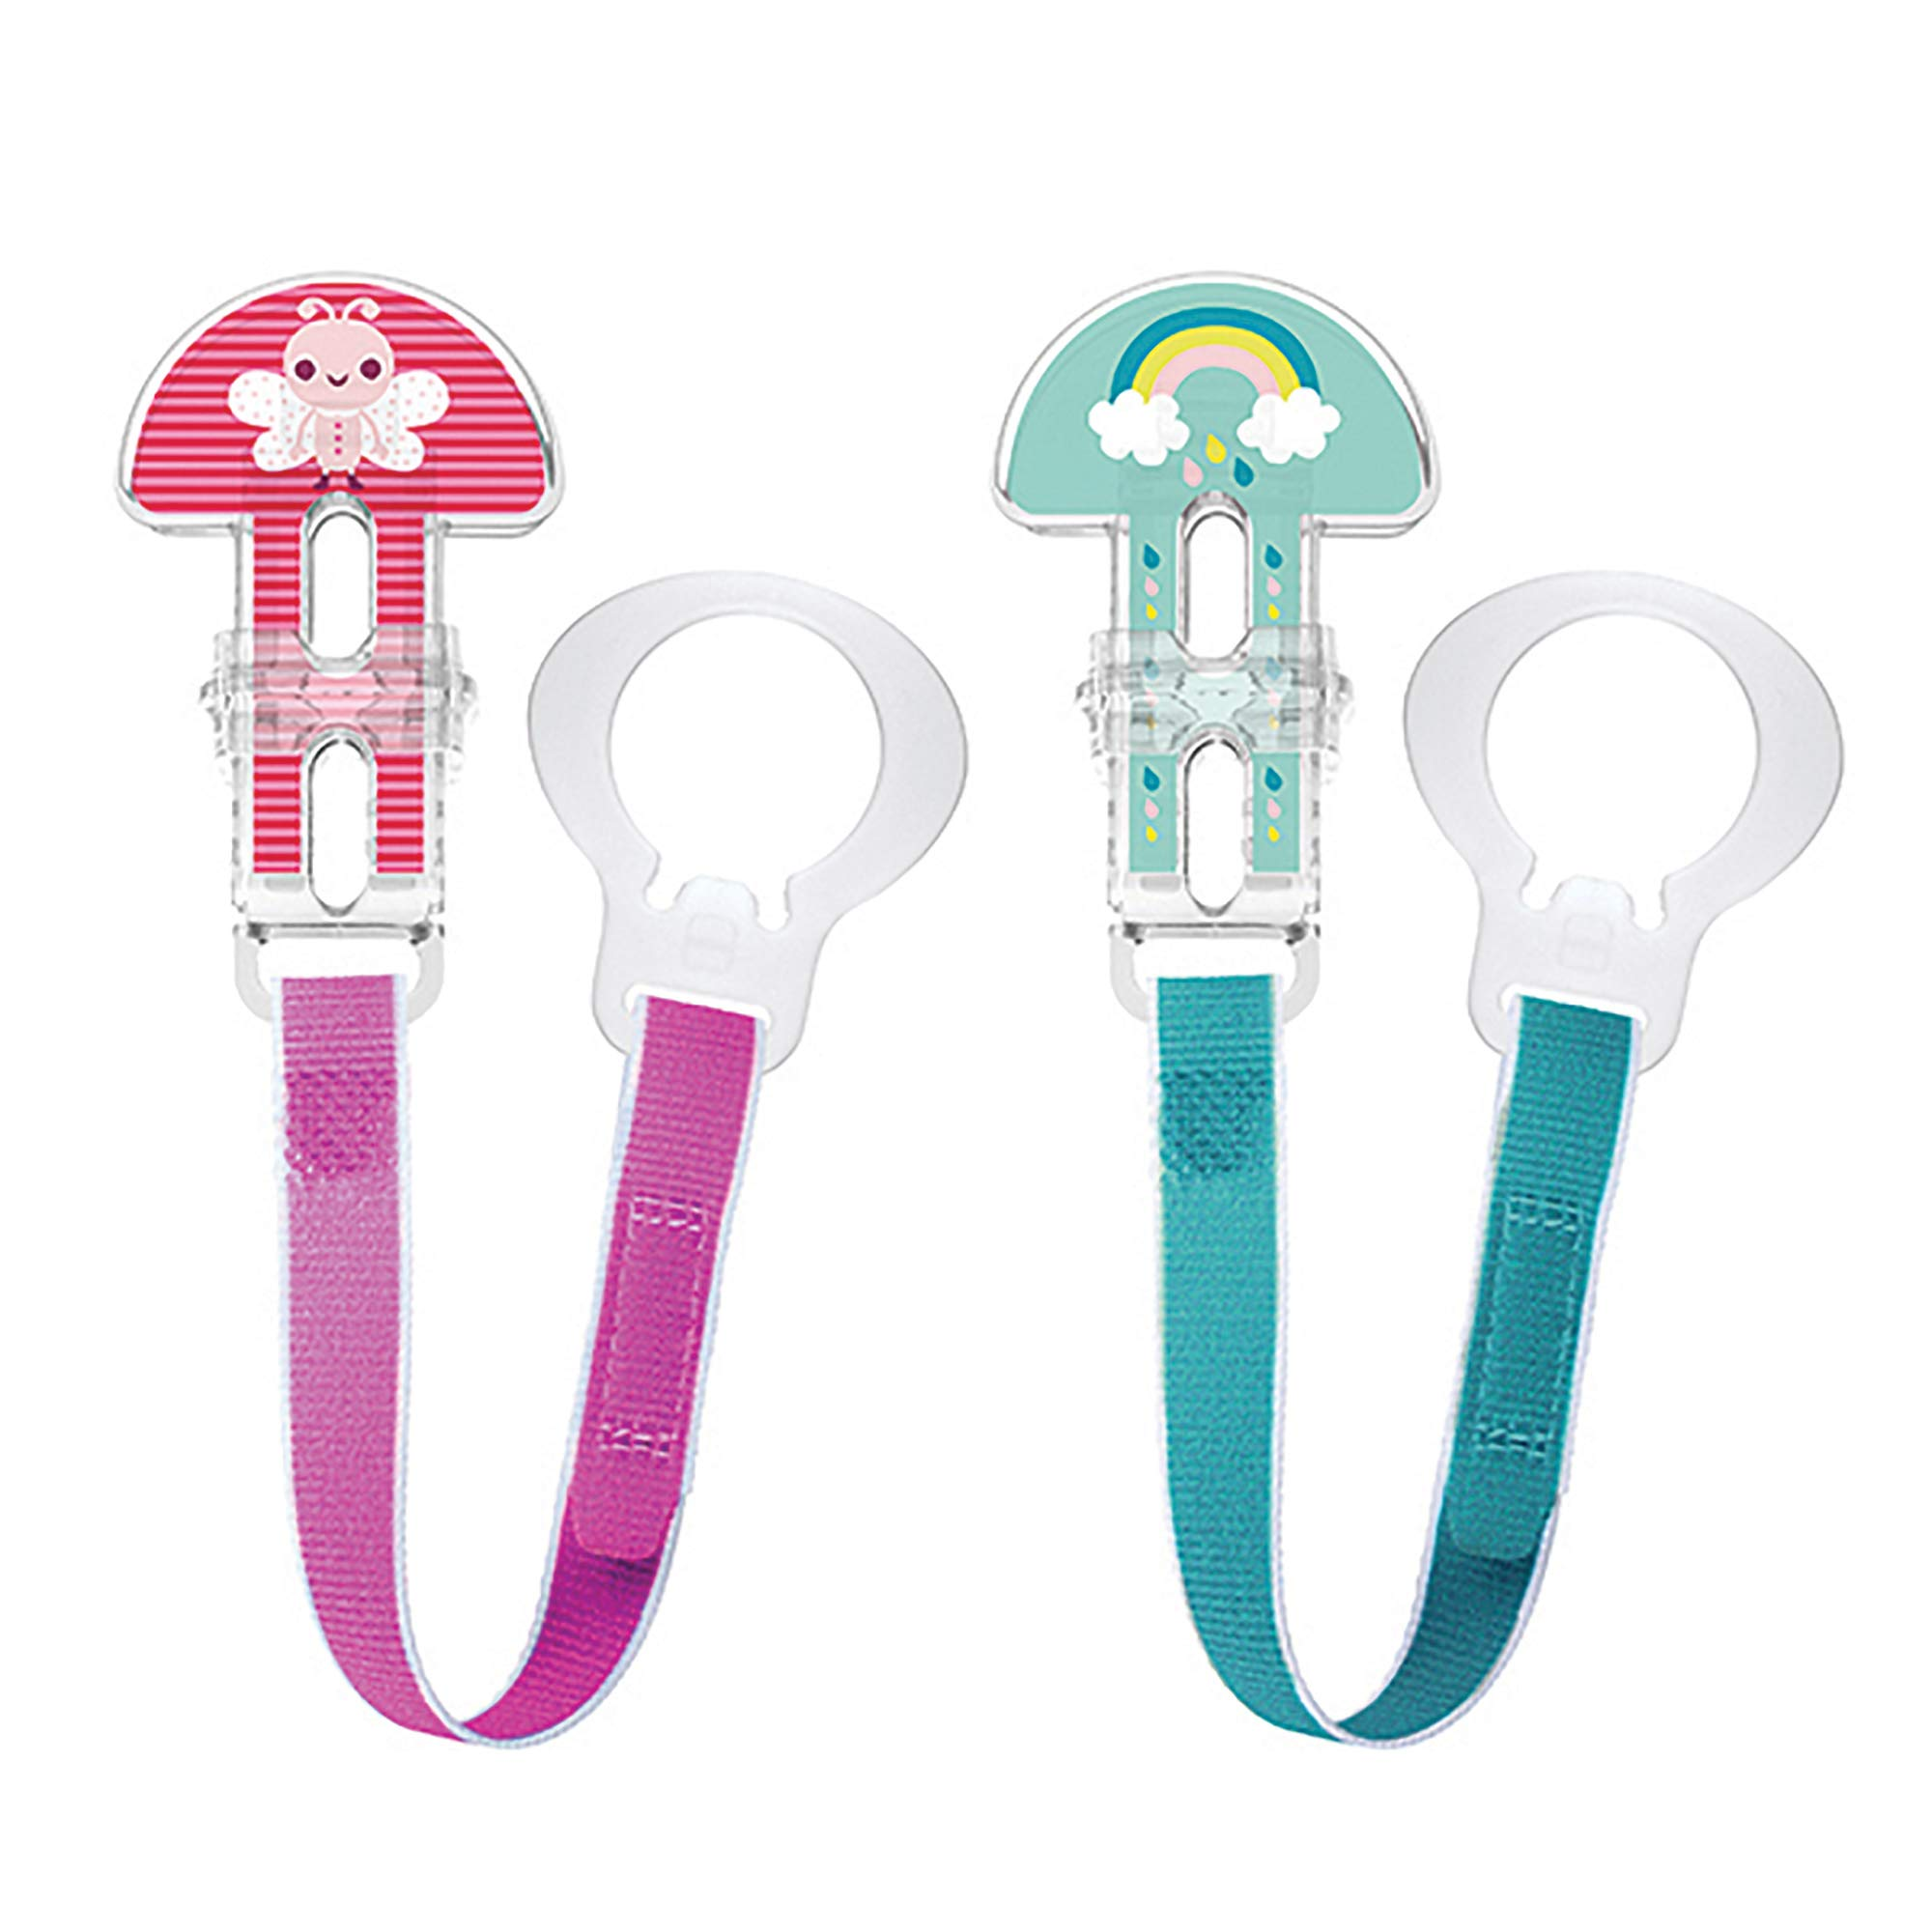 MAM Pacifier Clips, Baby Pacifier Clip, Double Clips, Girl, 2-Count, Designs May Vary